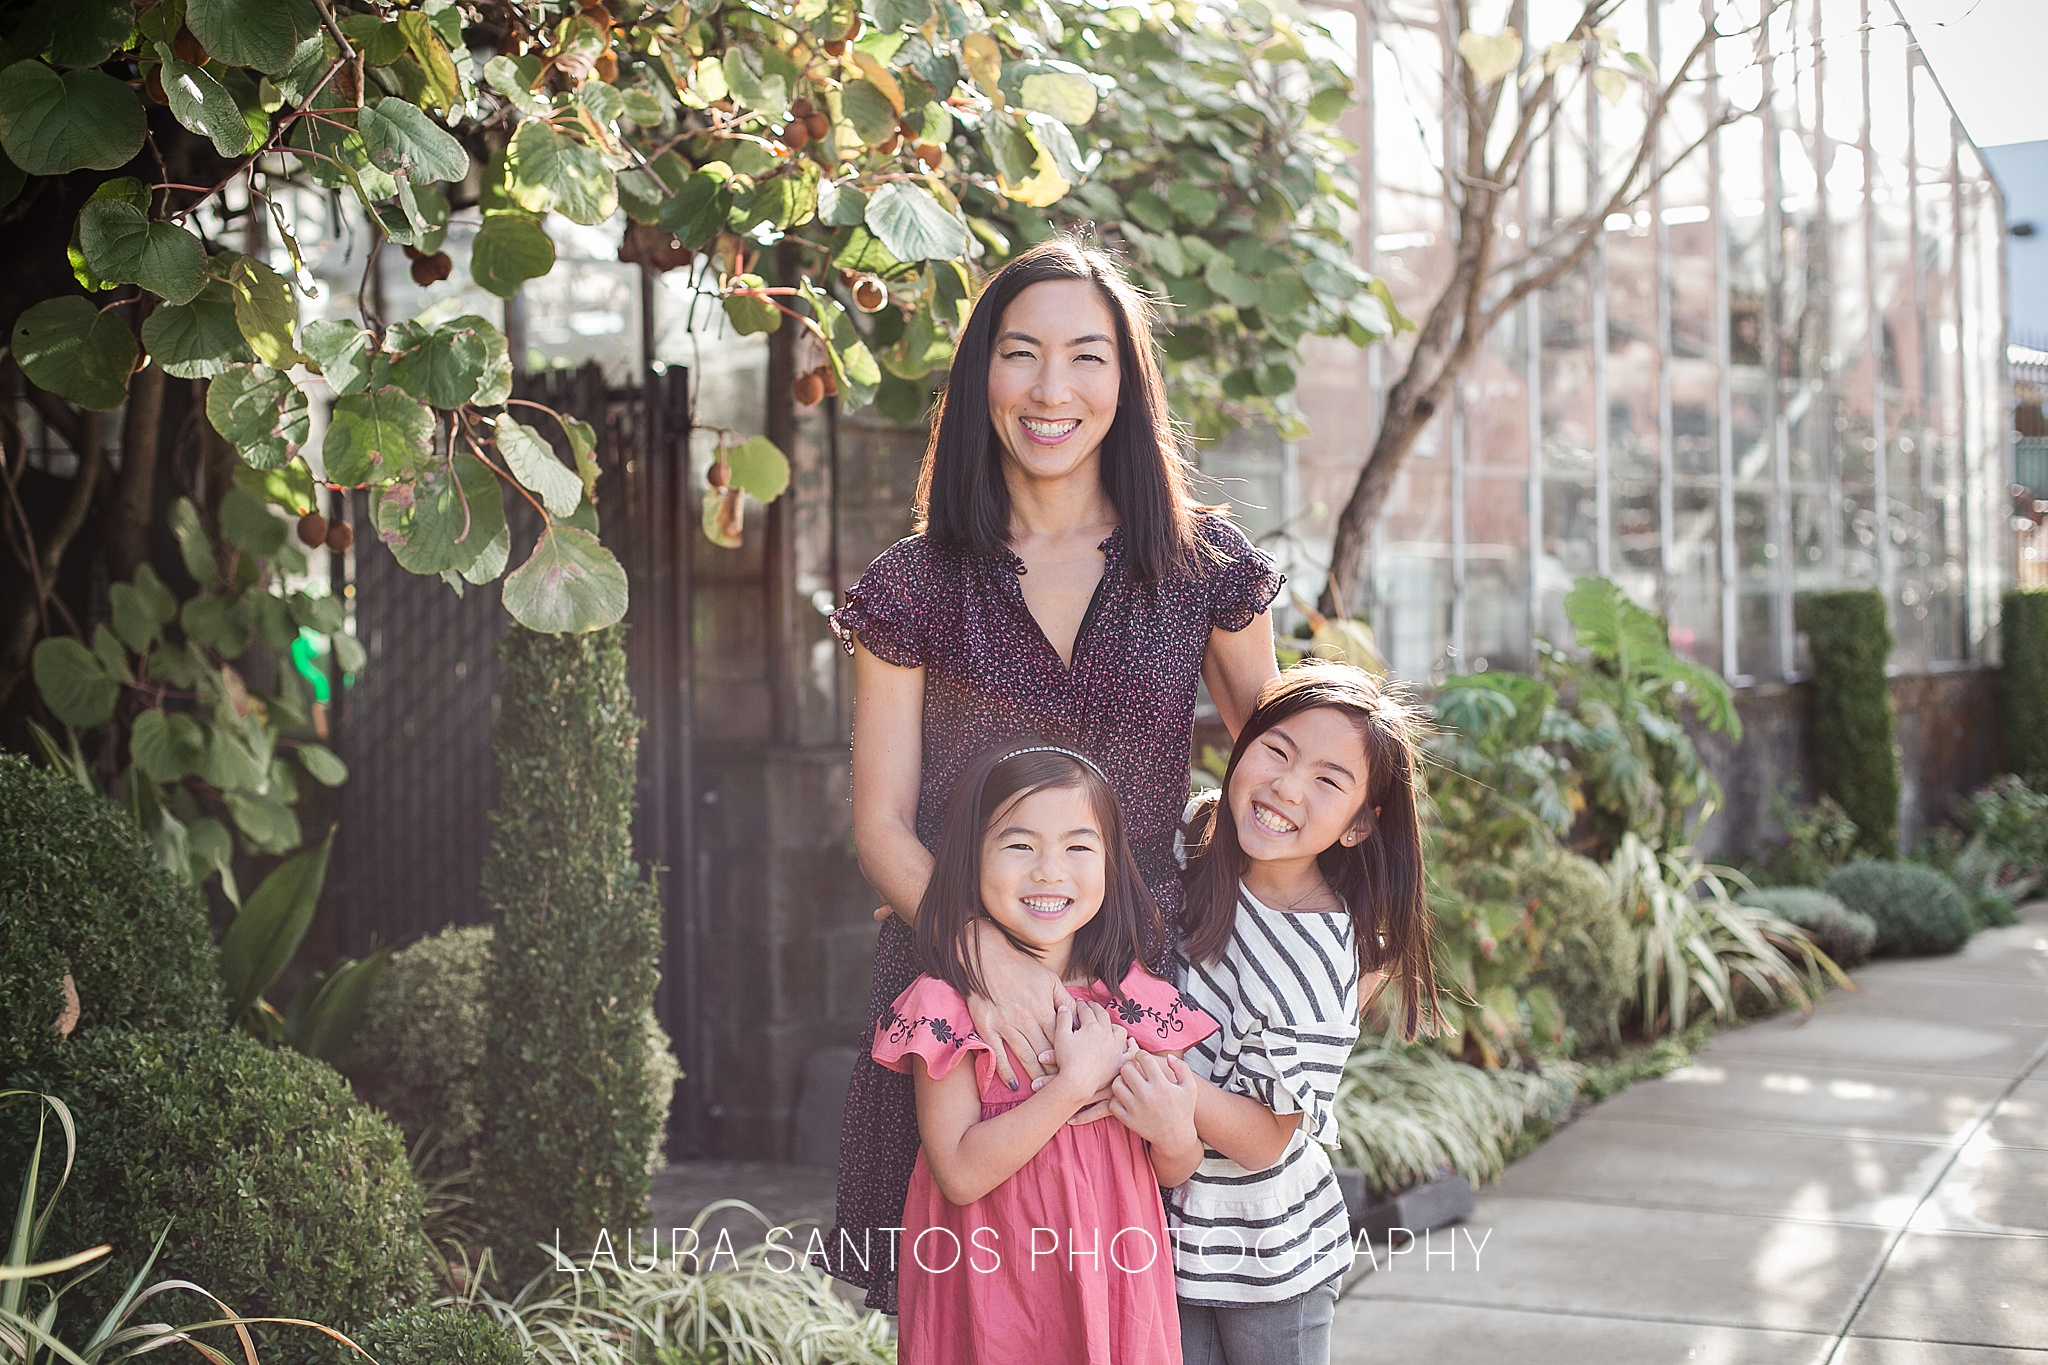 Laura Santos Photography Portland Oregon Family Photographer_0864.jpg